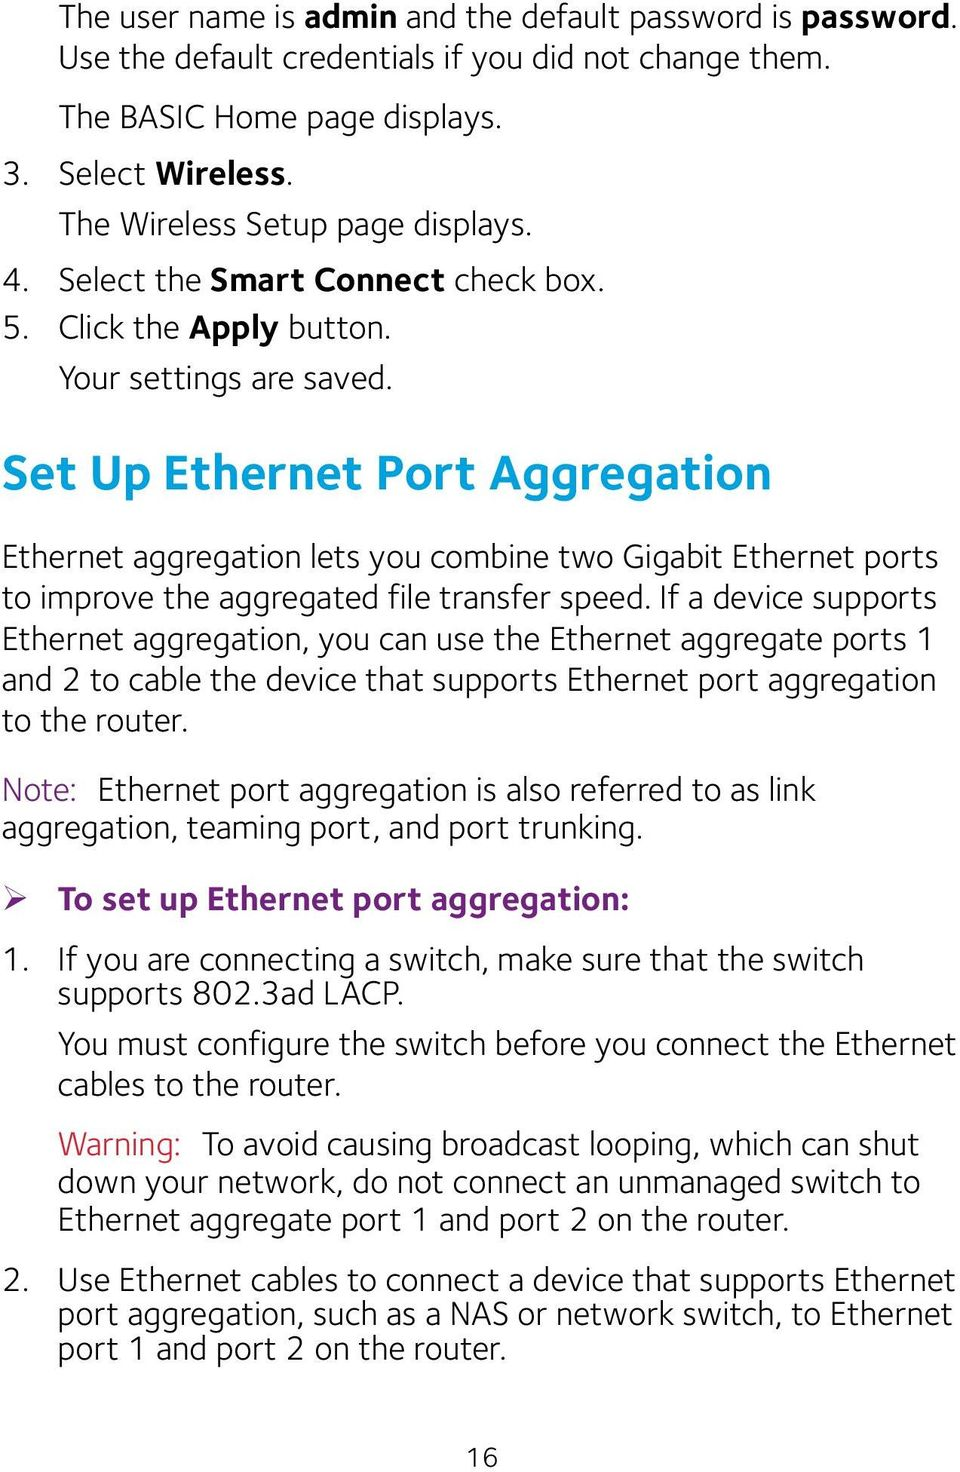 Set Up Ethernet Port Aggregation Ethernet aggregation lets you combine two Gigabit Ethernet ports to improve the aggregated file transfer speed.